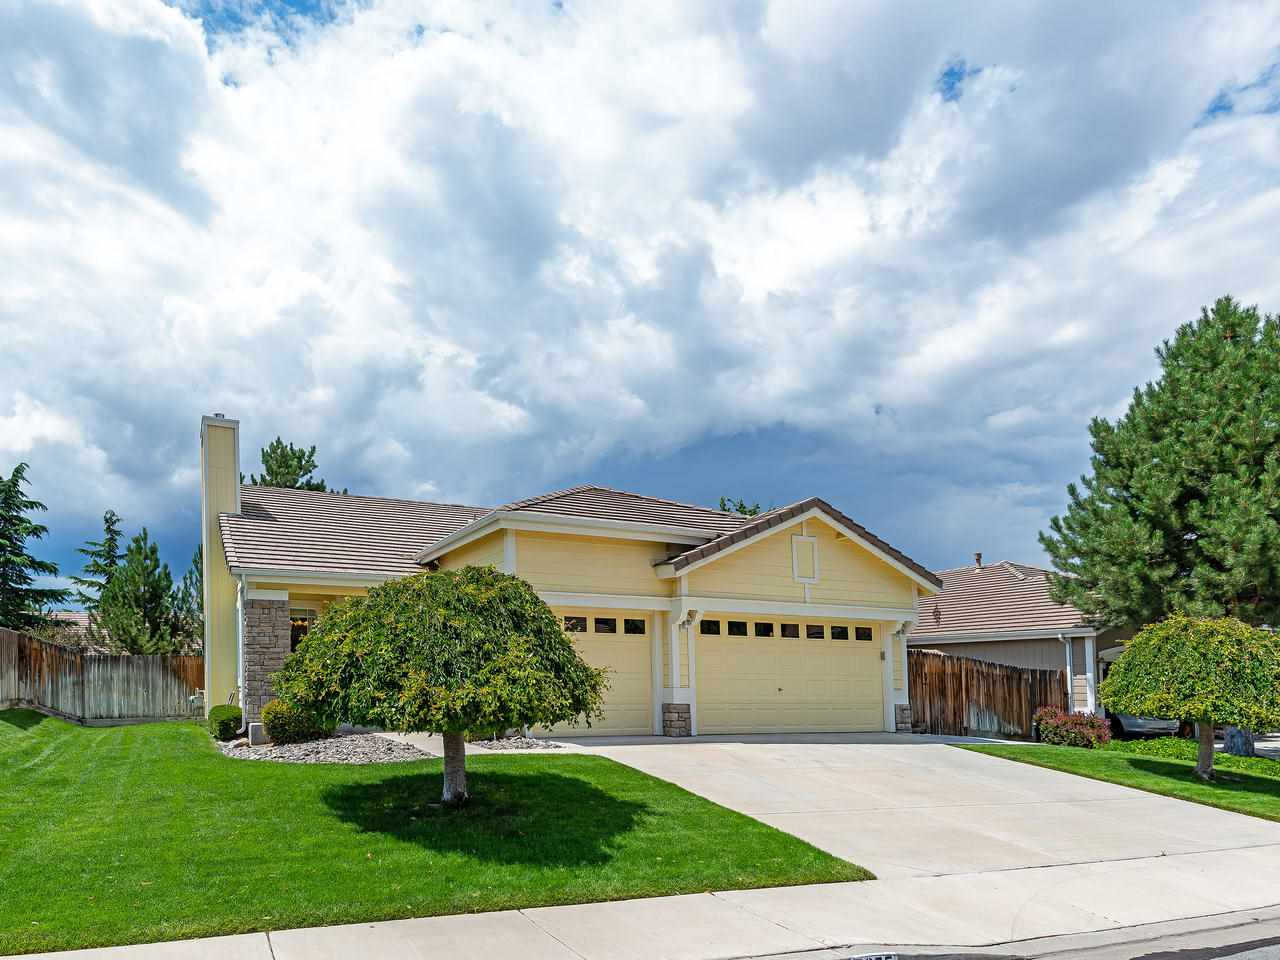 5355 Mesa Verde Drive, Sparks, NV 89436-4666 now has a new price of $370,000!